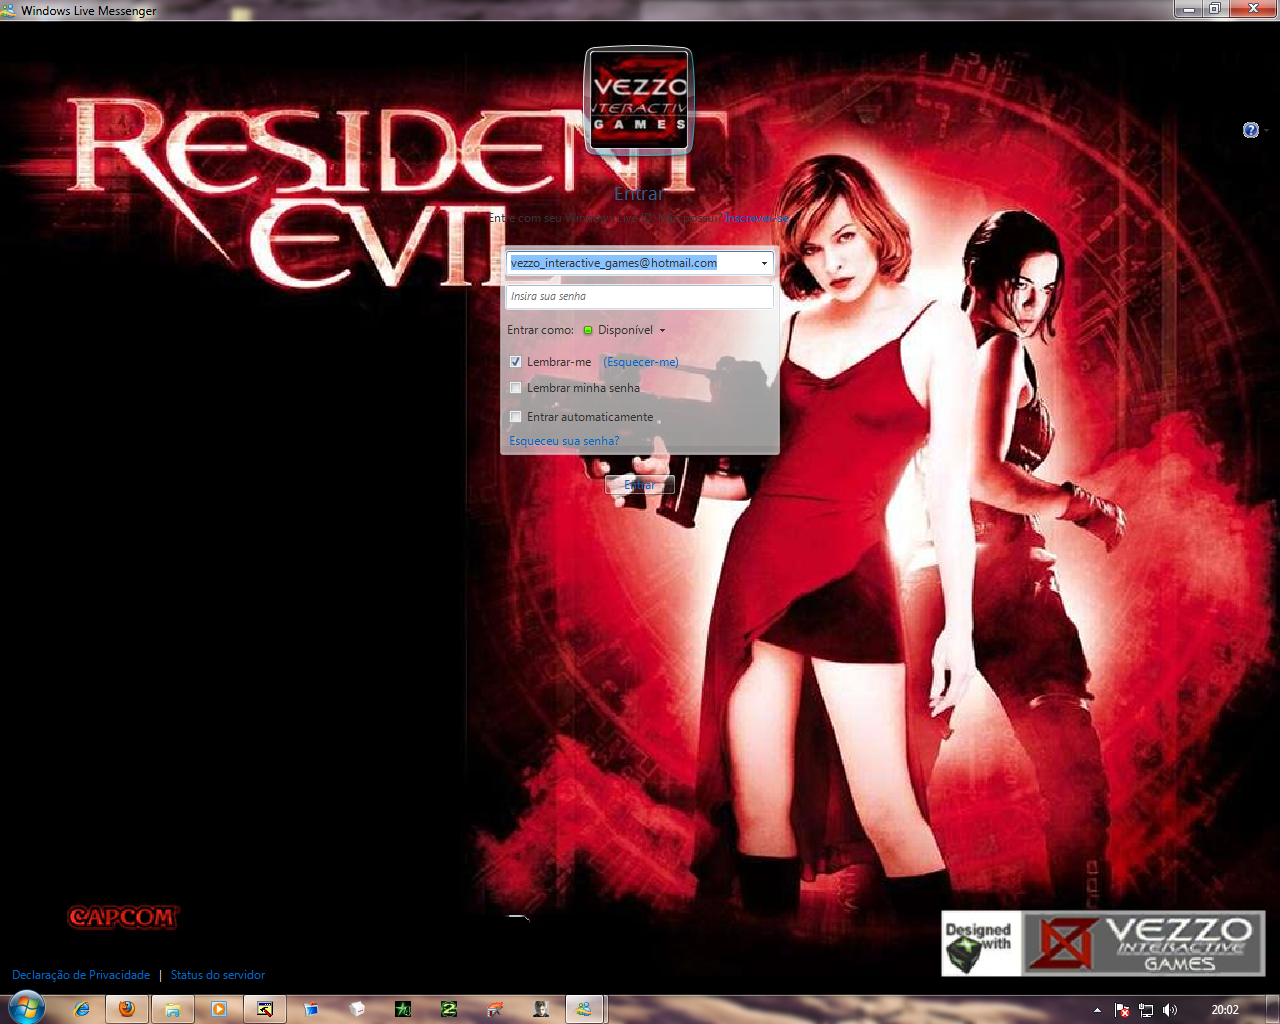 Download Skin-Msn 2009 Re Hóspede Maldito